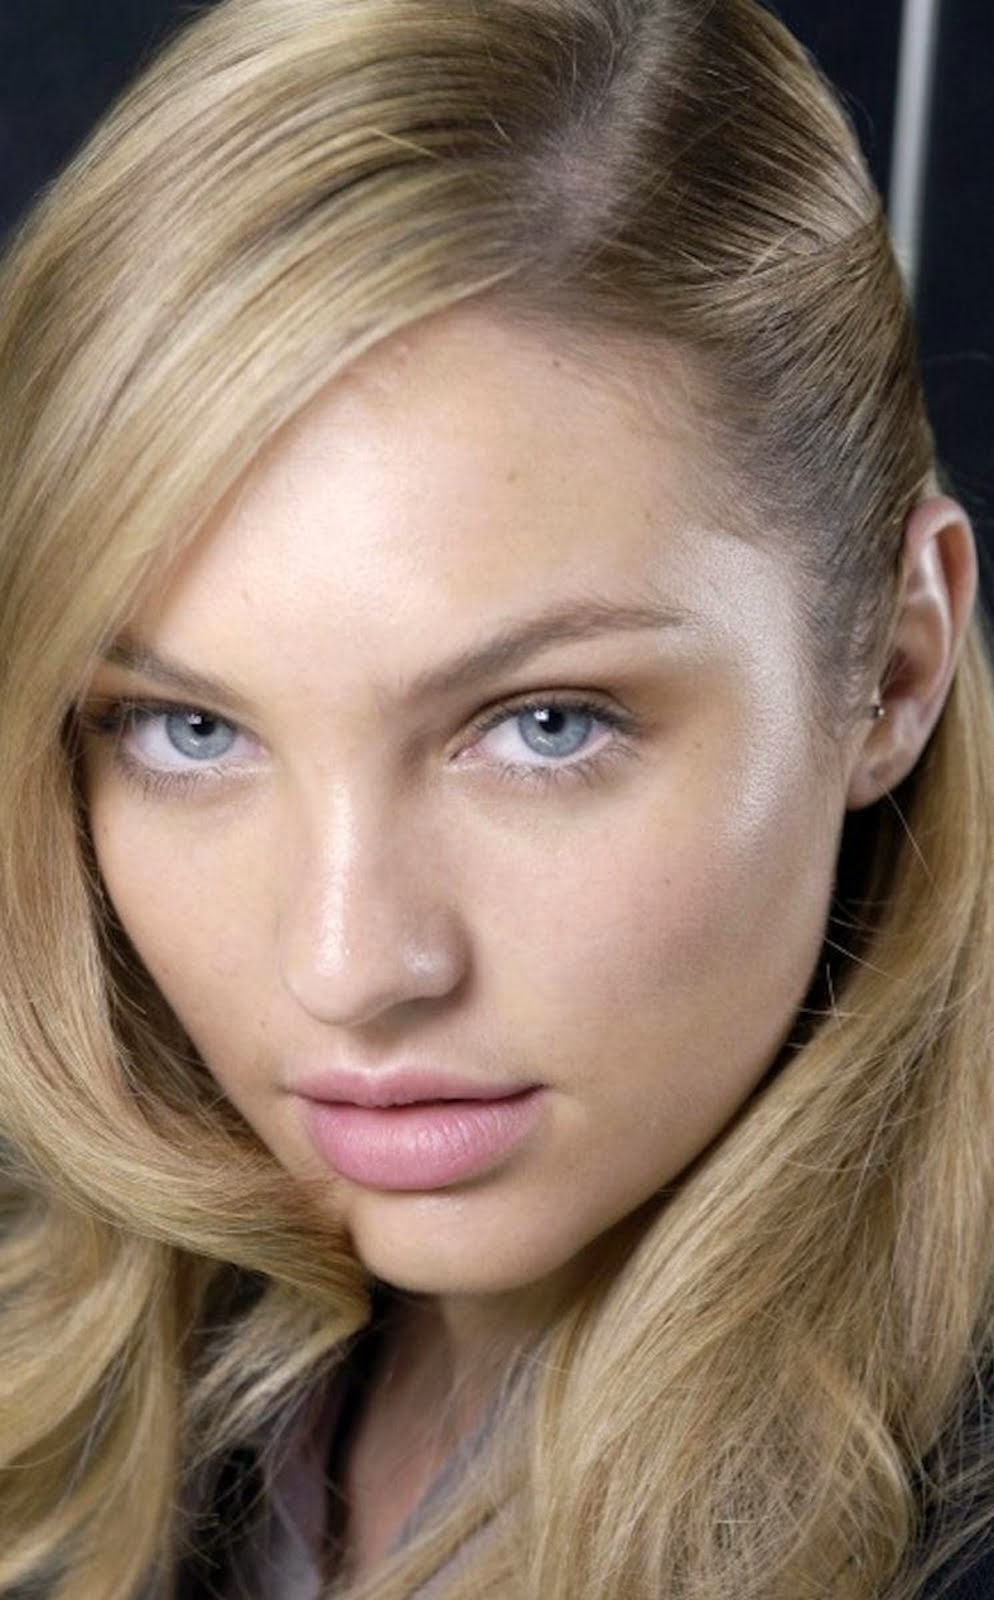 CANDICE SWANEPOEL FACE CLOSE UP NO MAKEUP